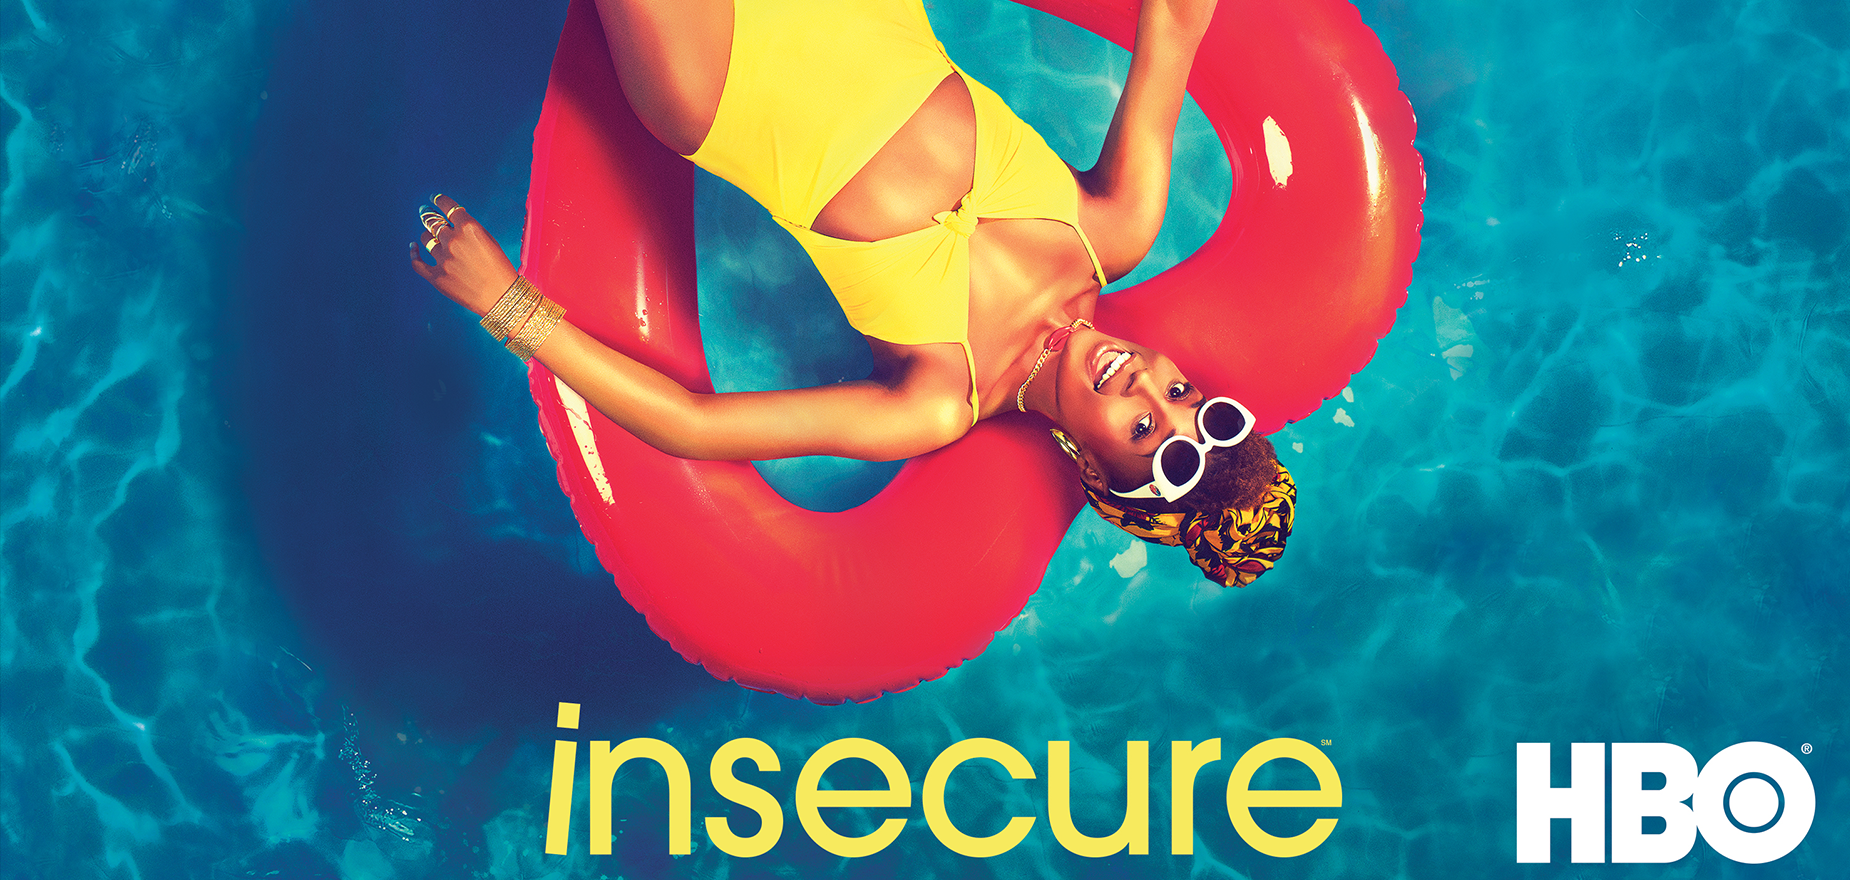 Insecure - HBO Entertainment in association with Issa Rae Productions, A Penny For Your Thoughts Entertainment and 3 Arts Entertainment